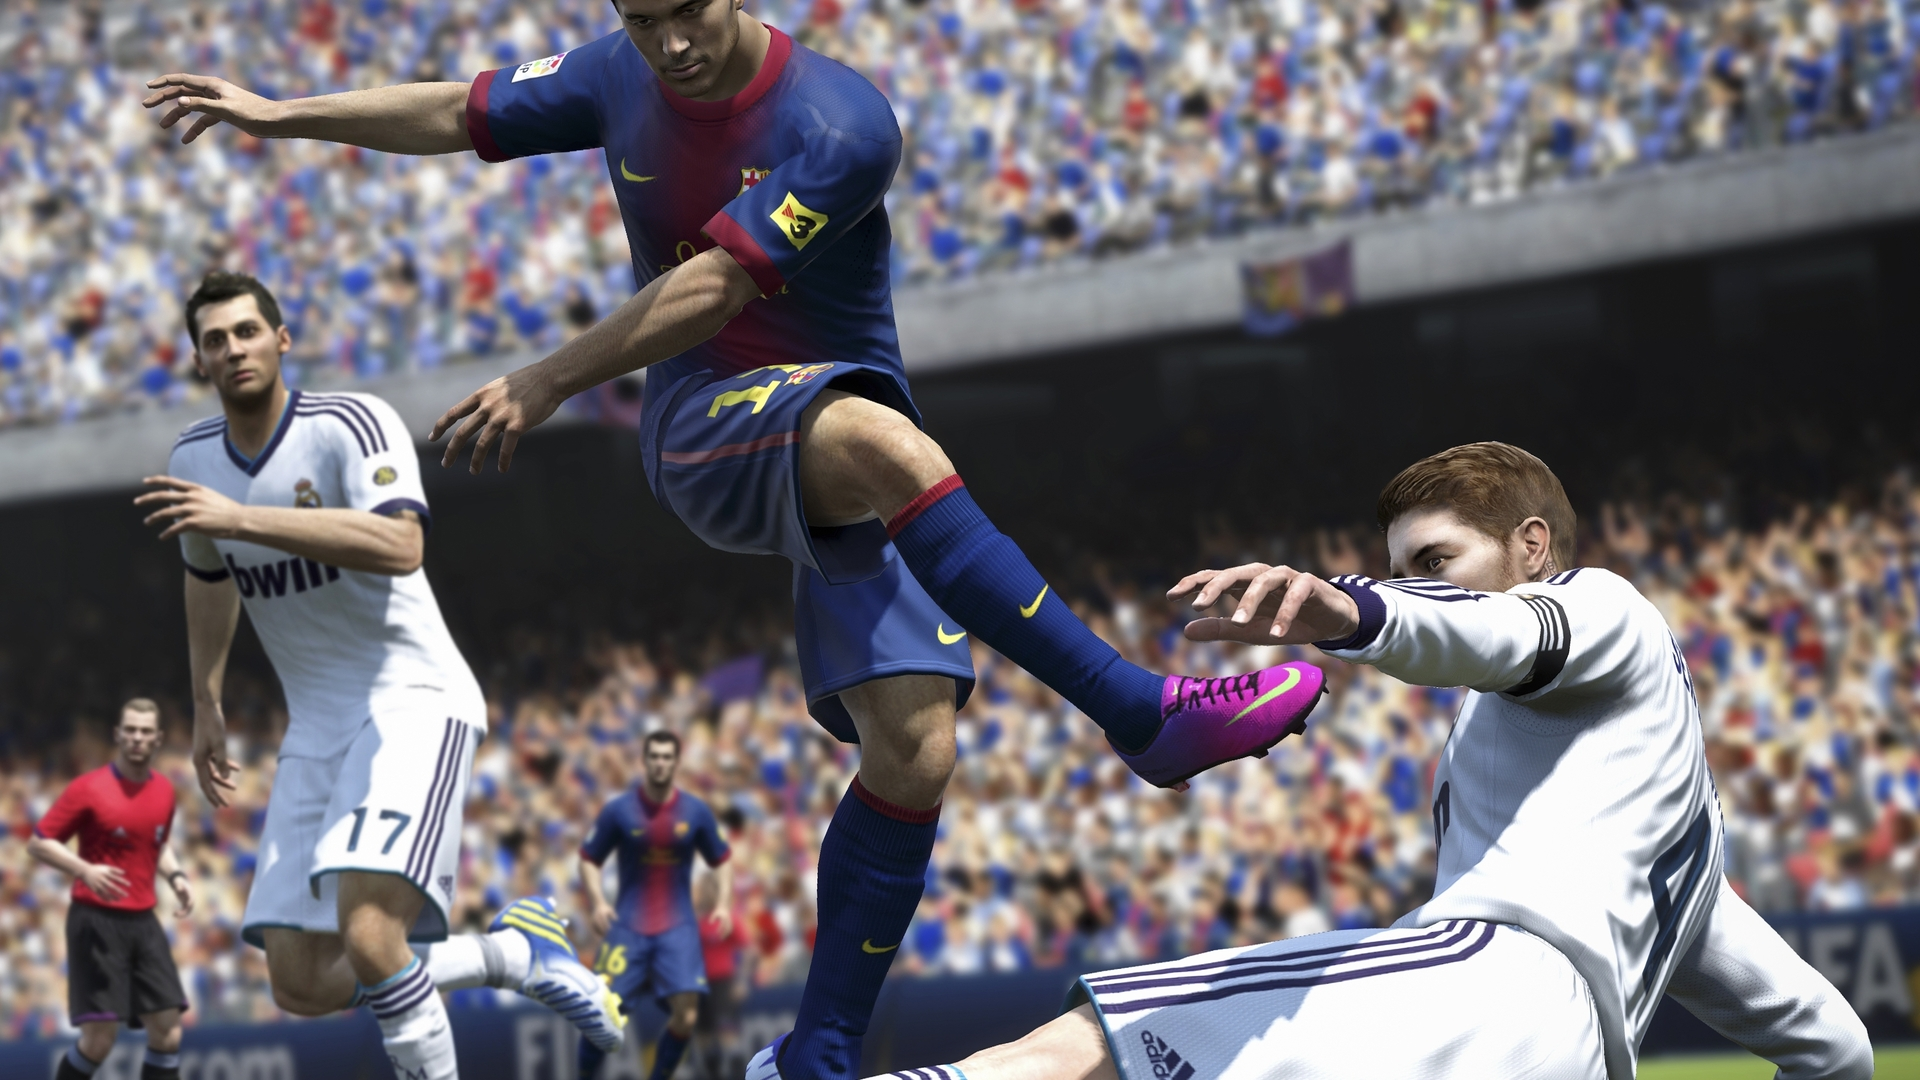 Fifa 14 on ps3 and xbox pre order details | cheap games.